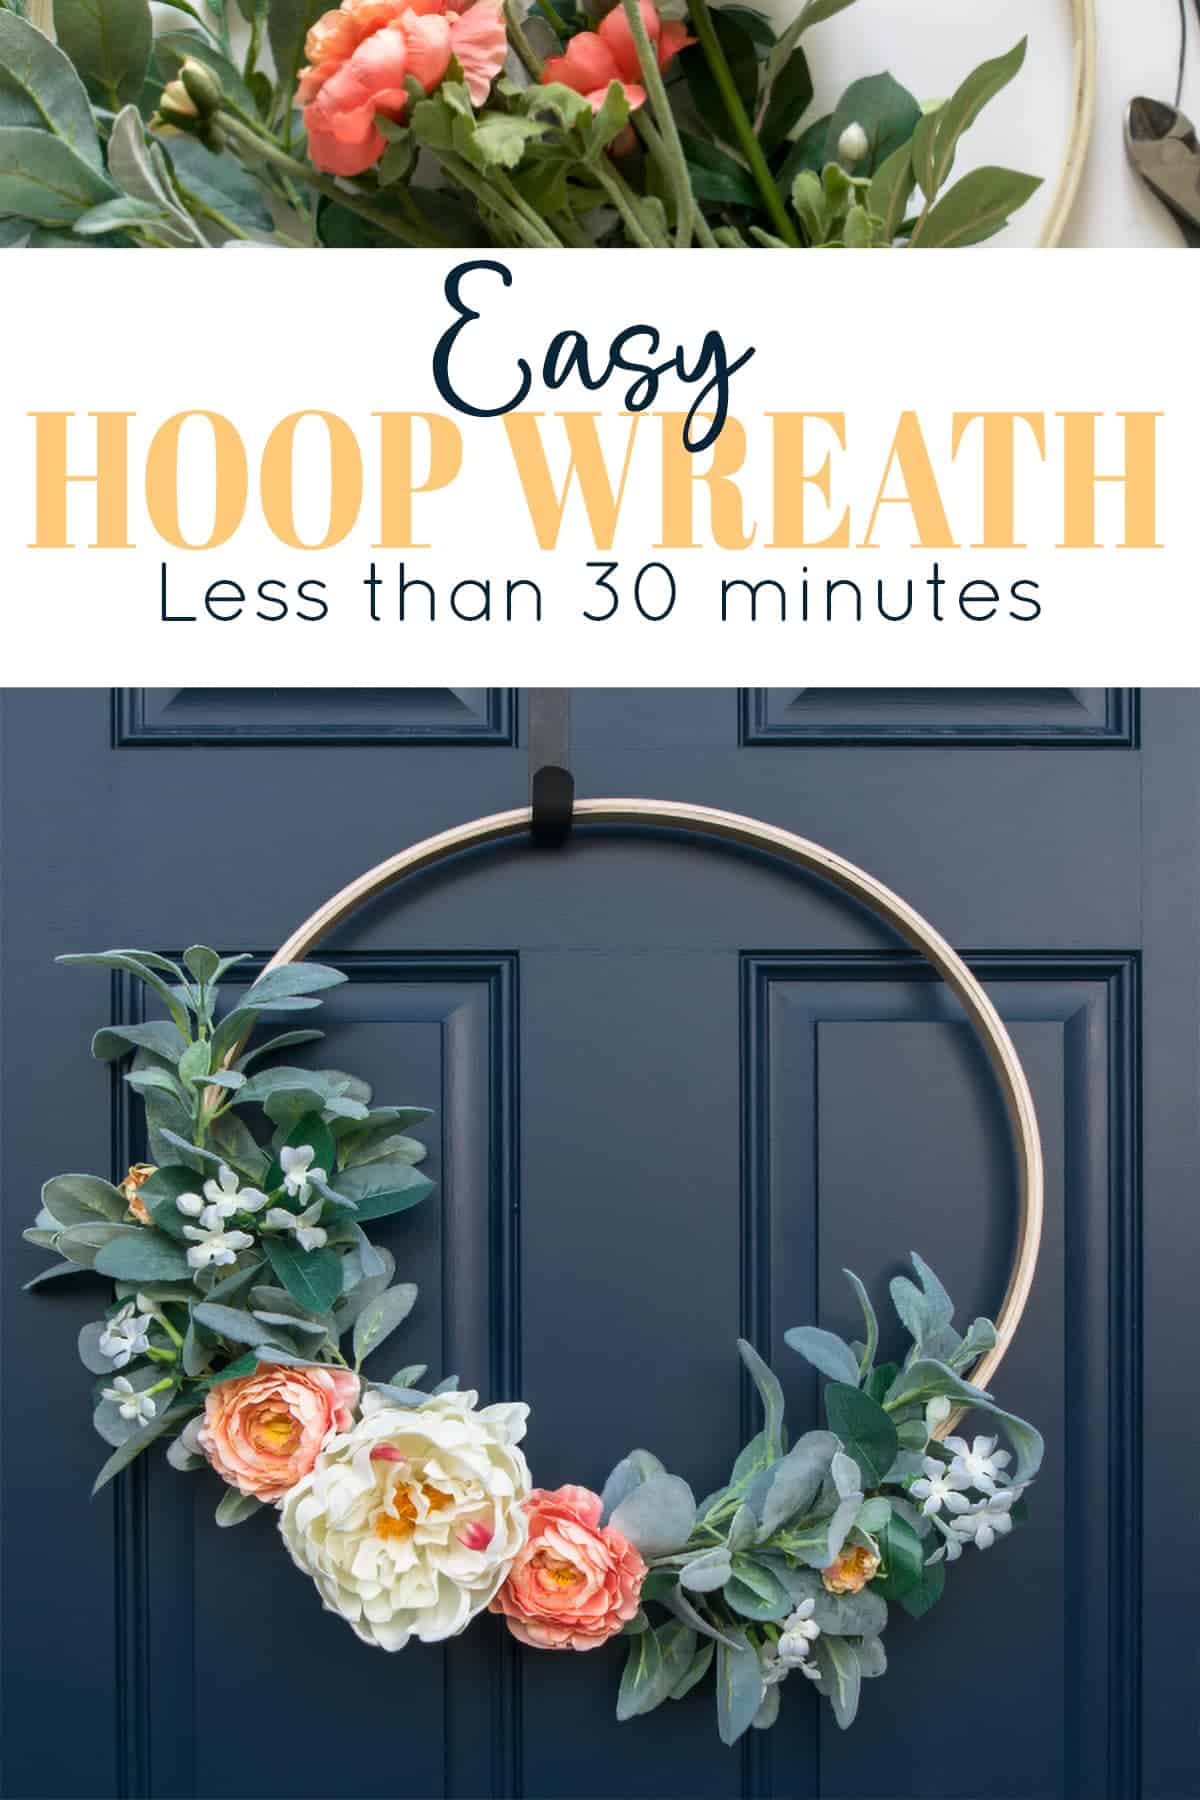 Assembling the hoop wreath and completed hoop wreath hanging on blue front door with title.